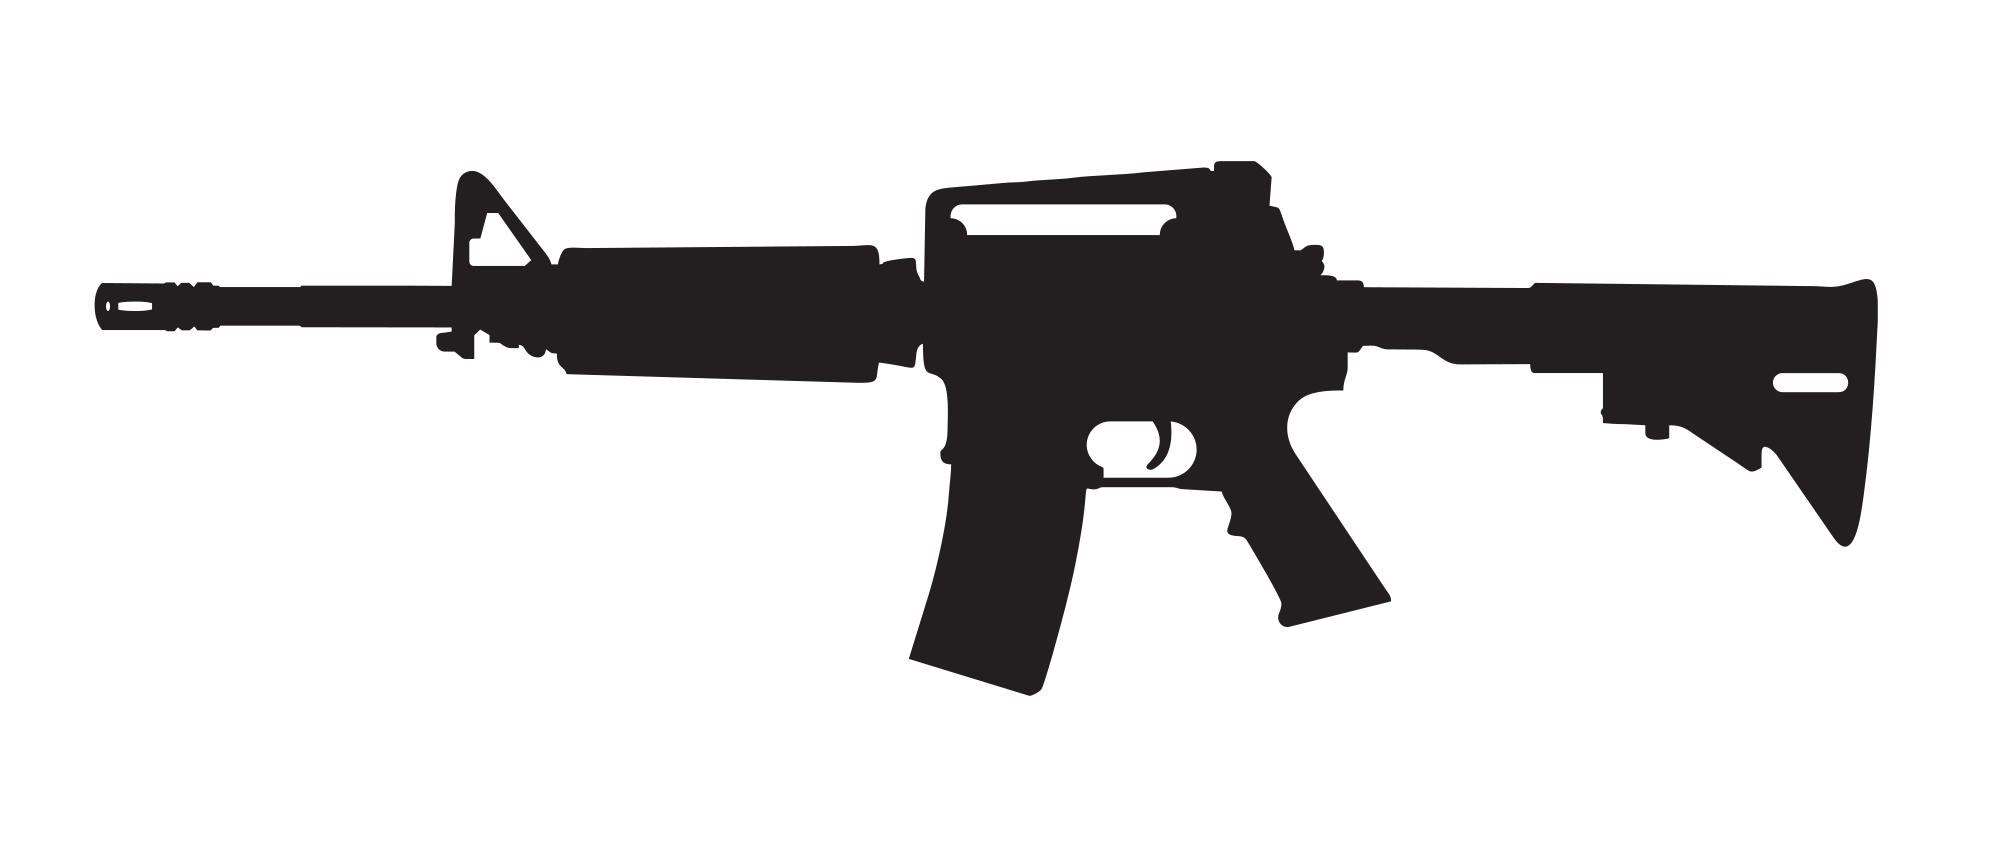 Colt at getdrawings com. Guns clipart silhouette